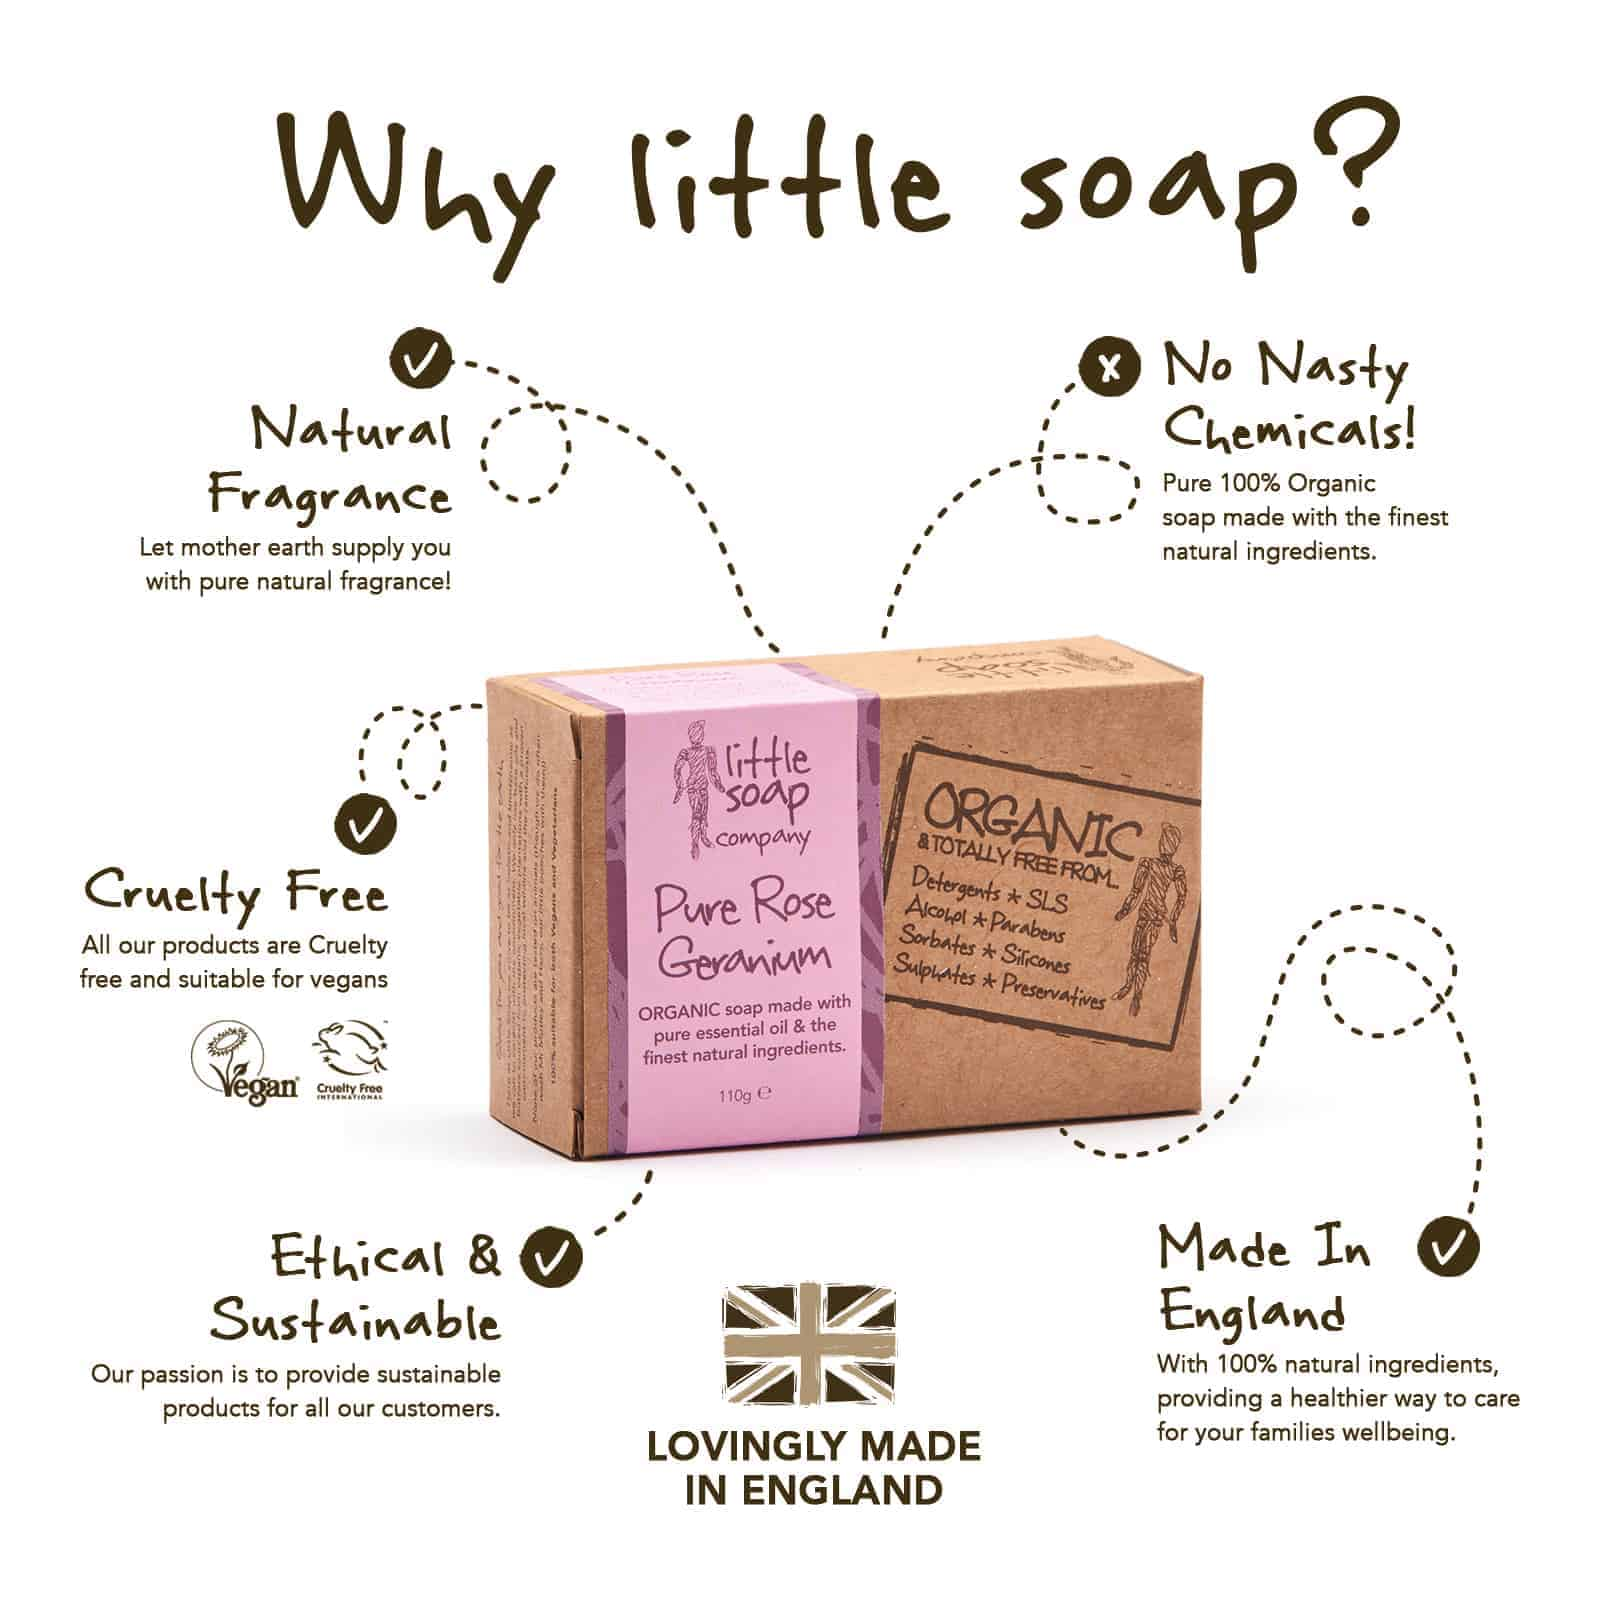 Non-toxic beauty: what to look out for_LittleSoapCompany.co.uk